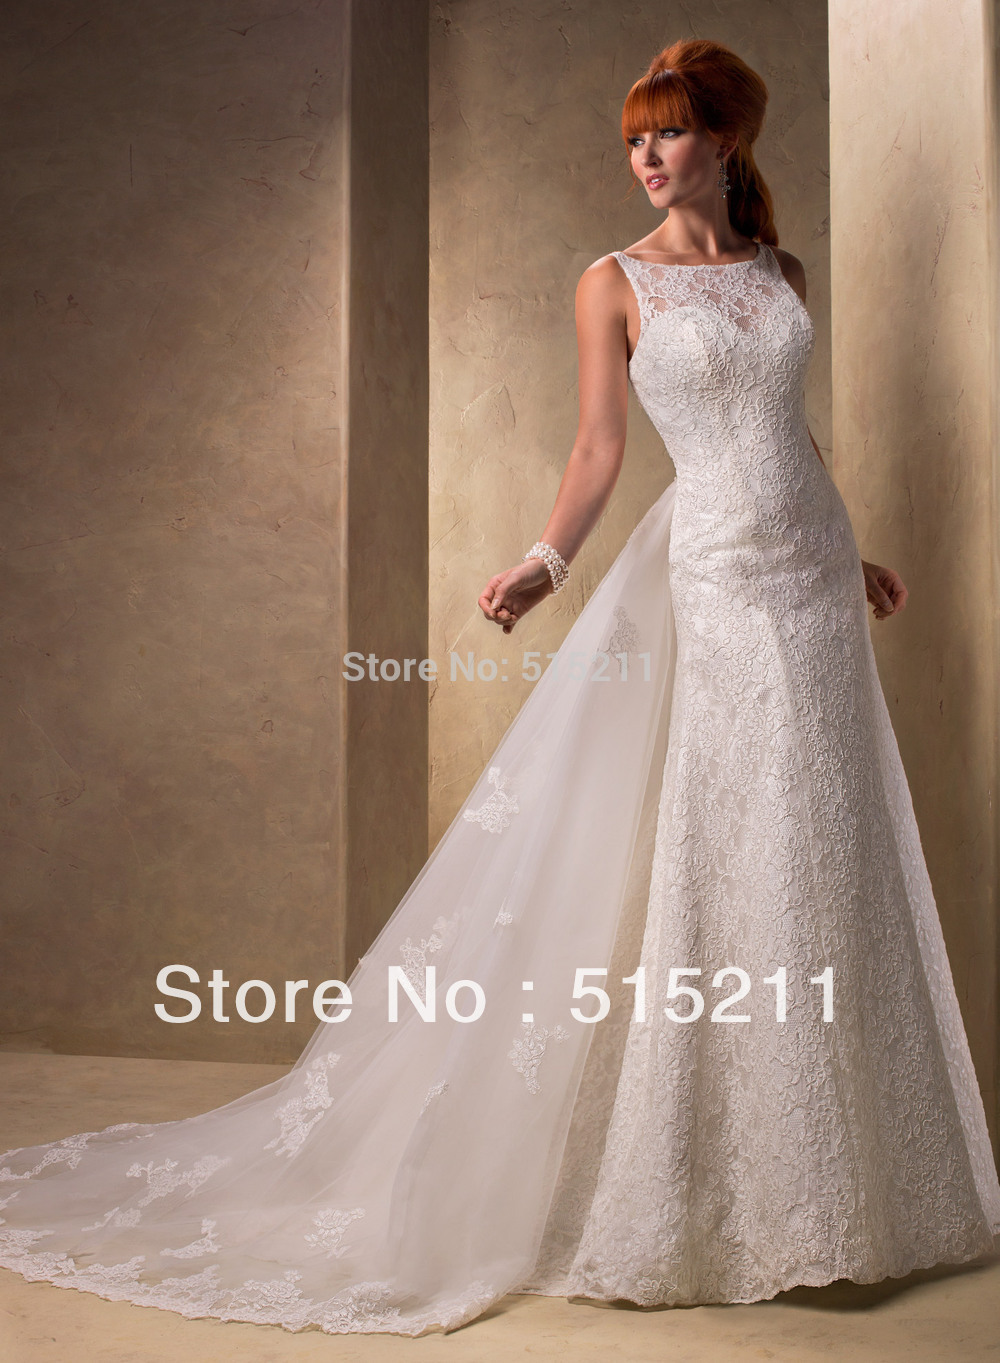 Custom made vintage lace open back mermaid wedding dress for Mermaid wedding dress with detachable train